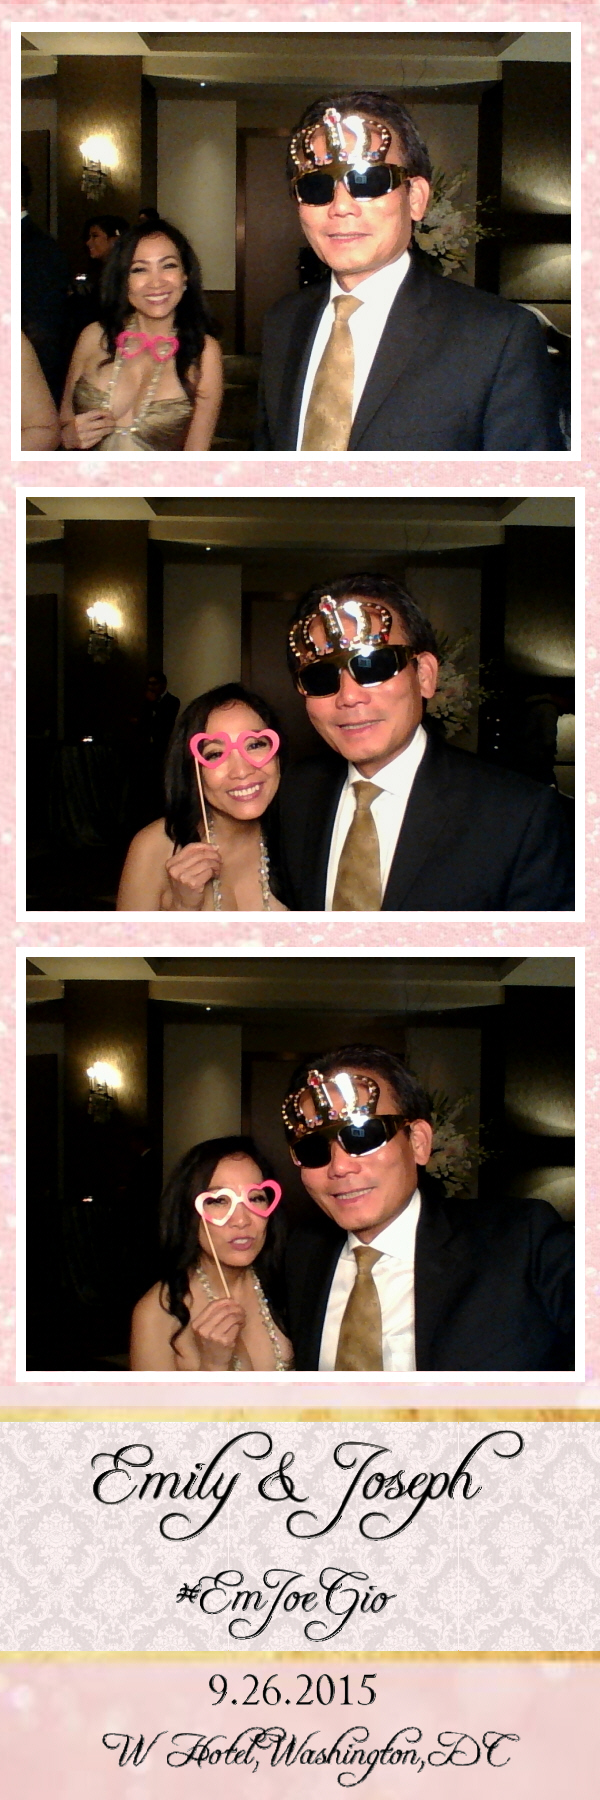 Guest House Events Photo Booth E&J (8).jpg